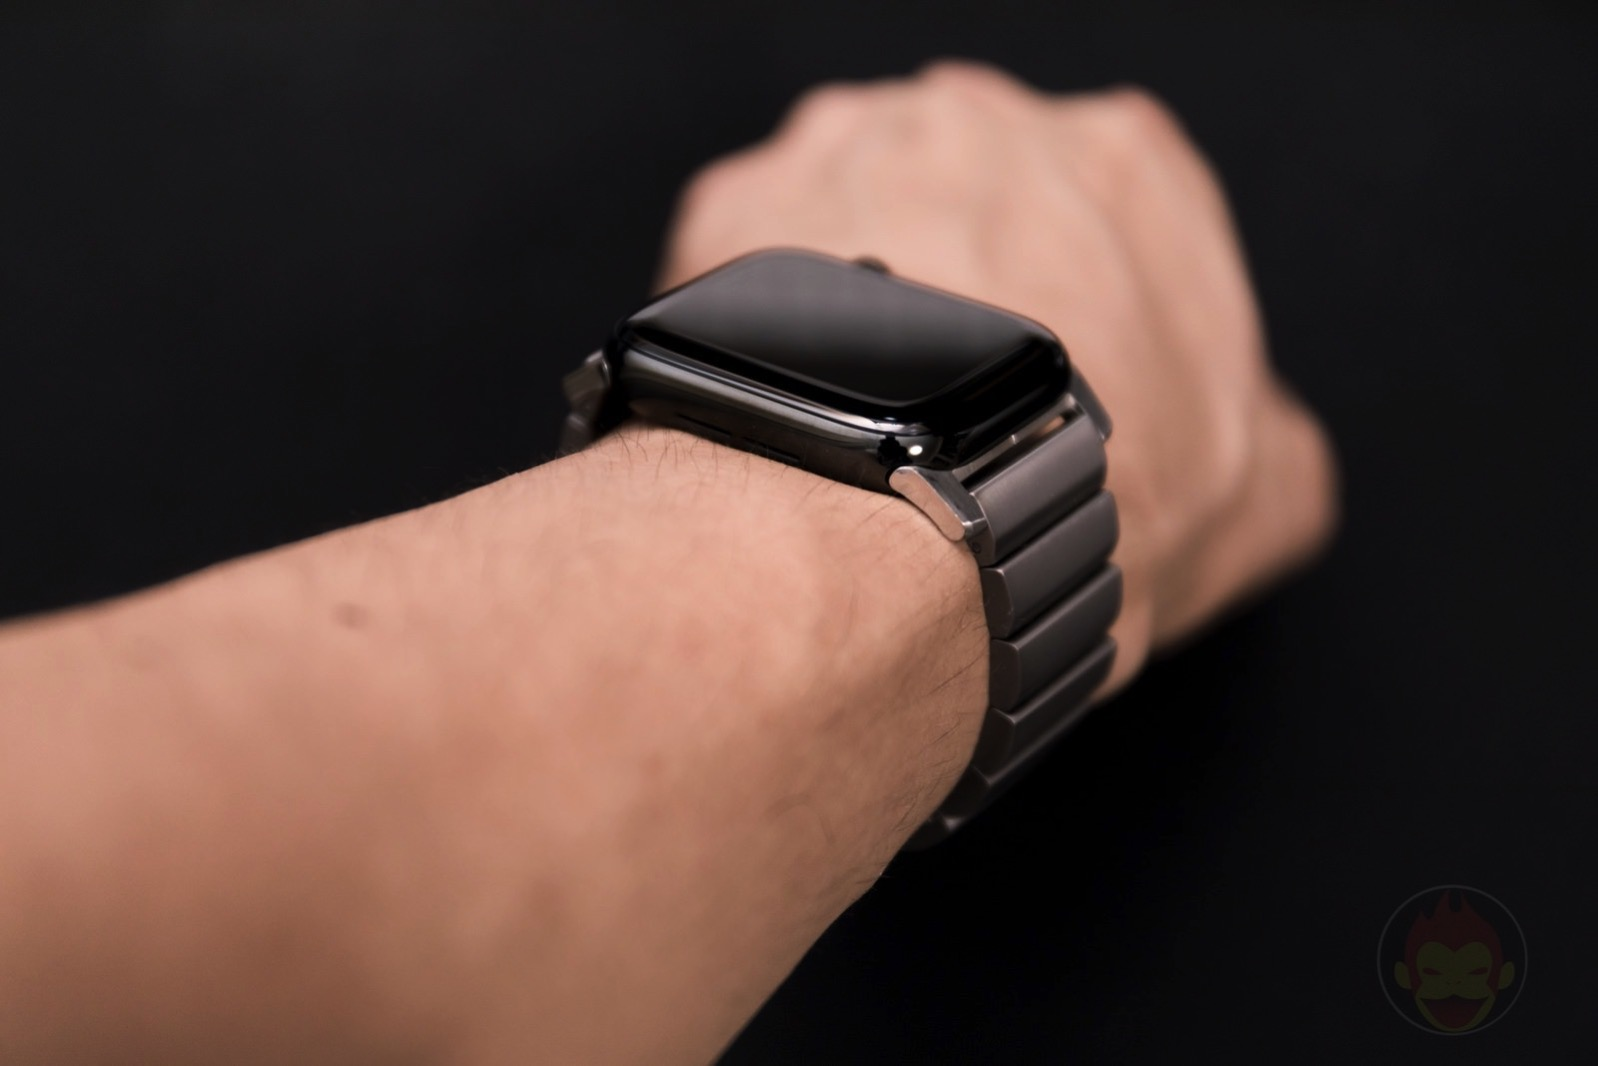 Apple-Watch-Nomad-Titanium-Band-Review-34.jpg